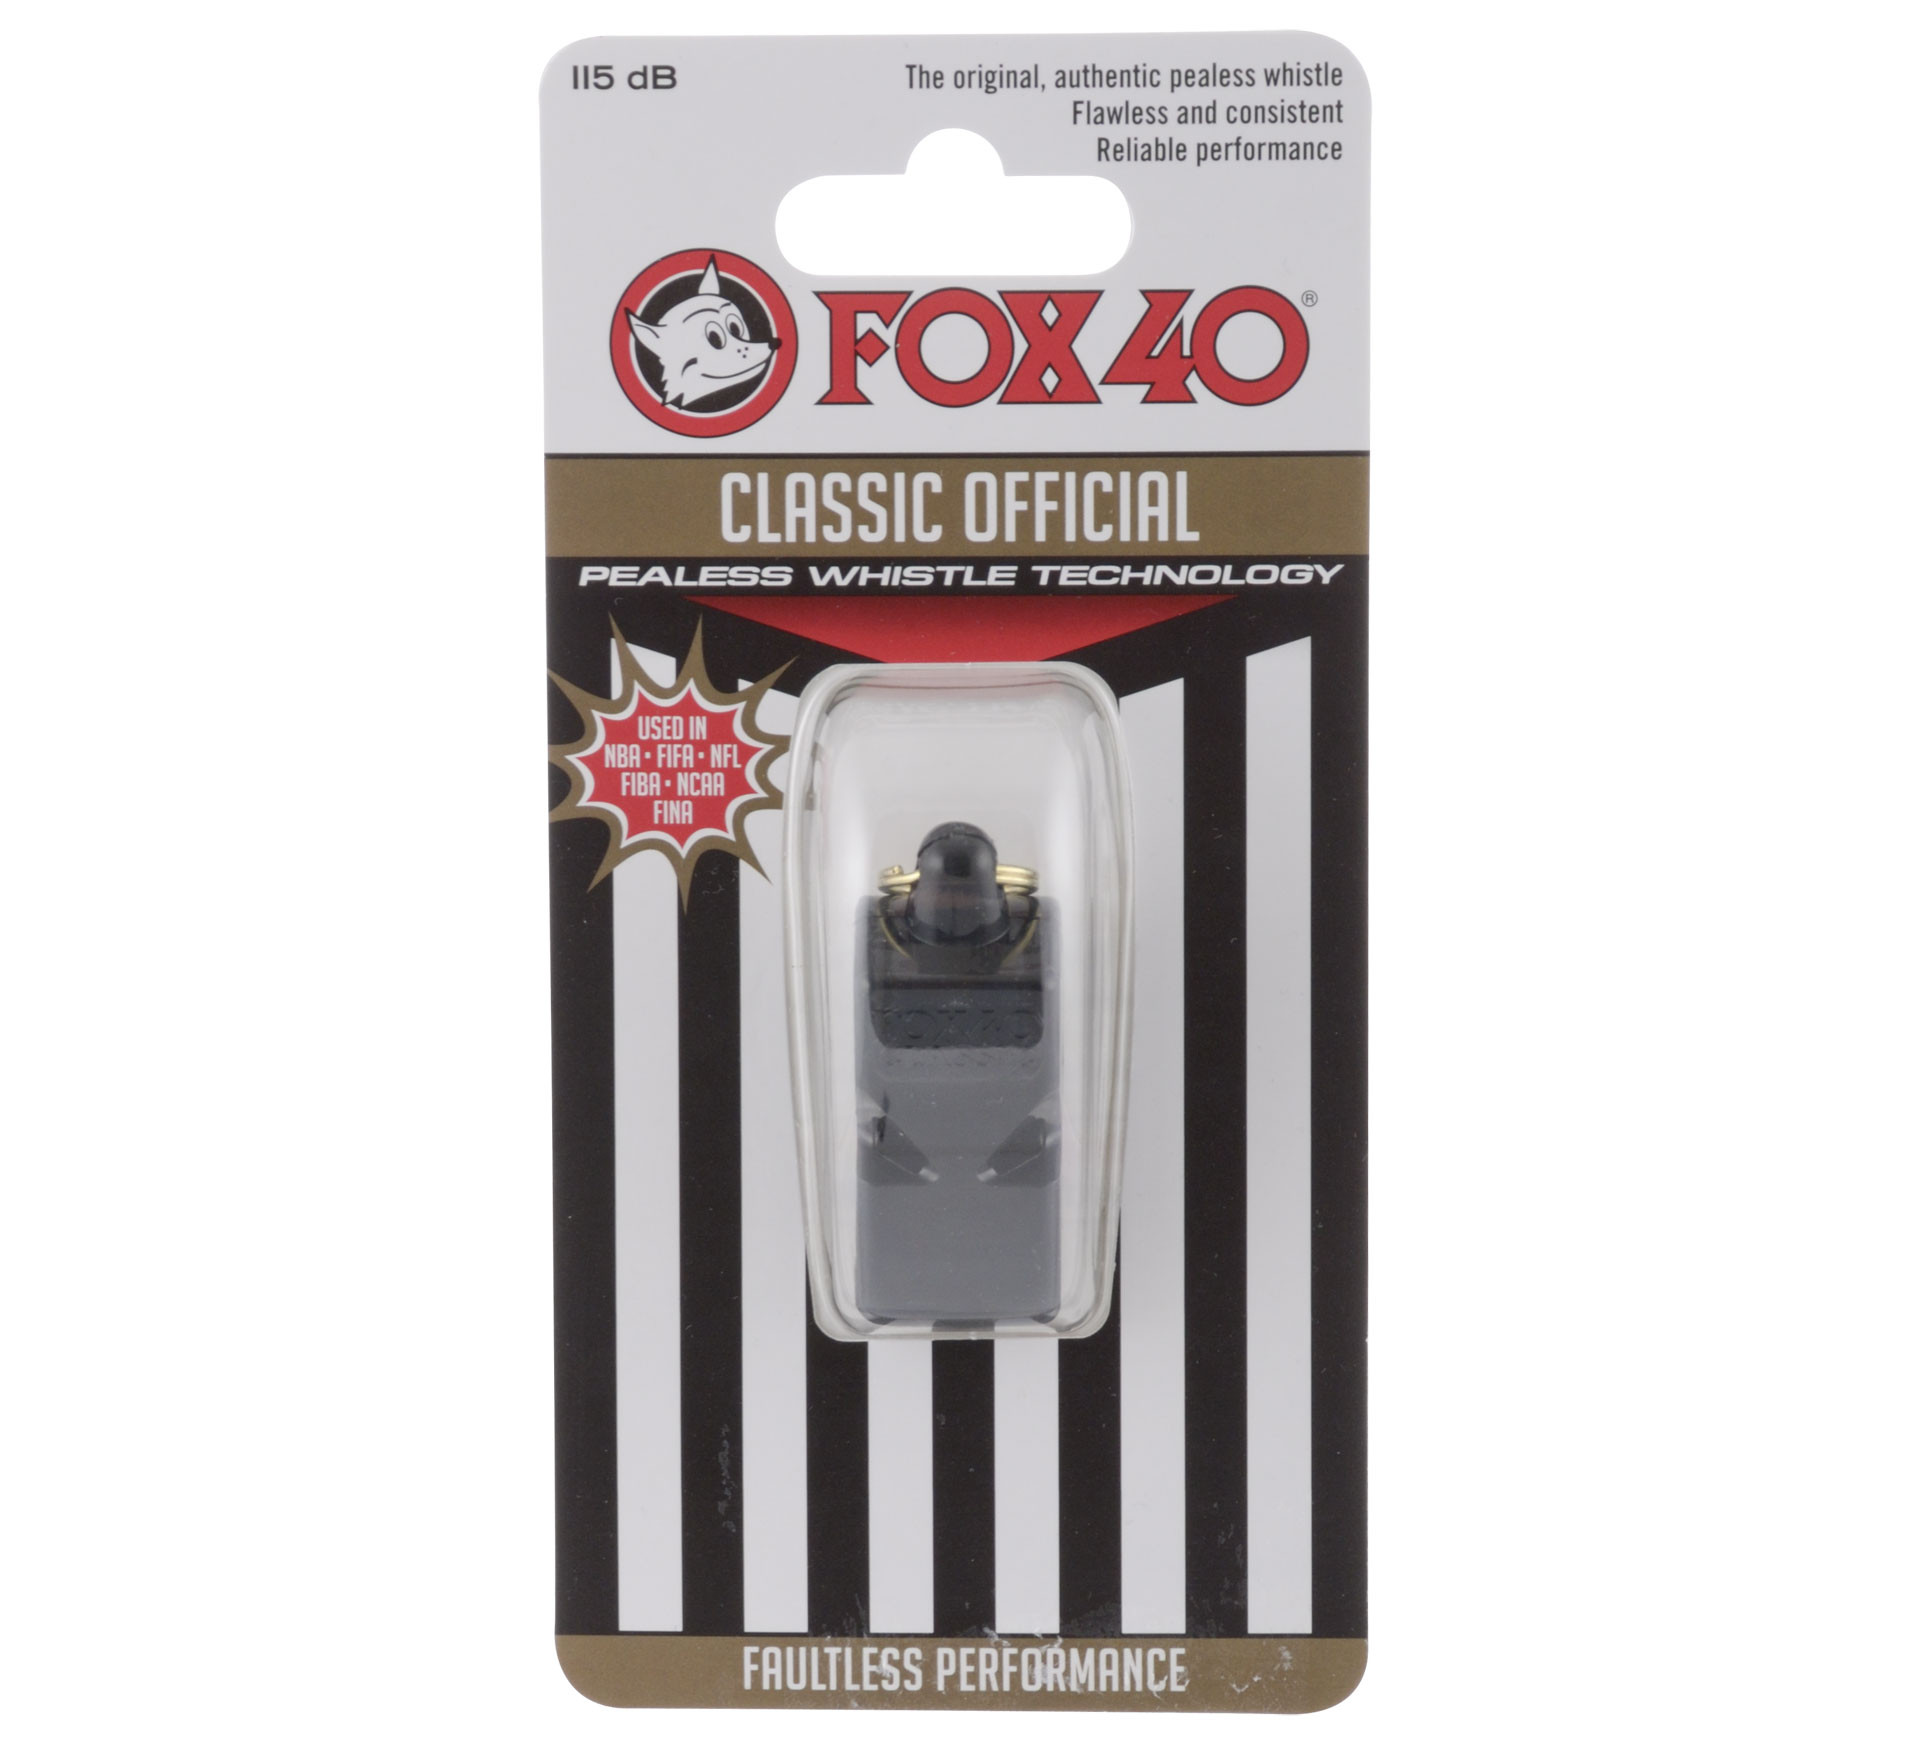 Fox 40 Official Pealess Whistle with Breakaway Lanyard